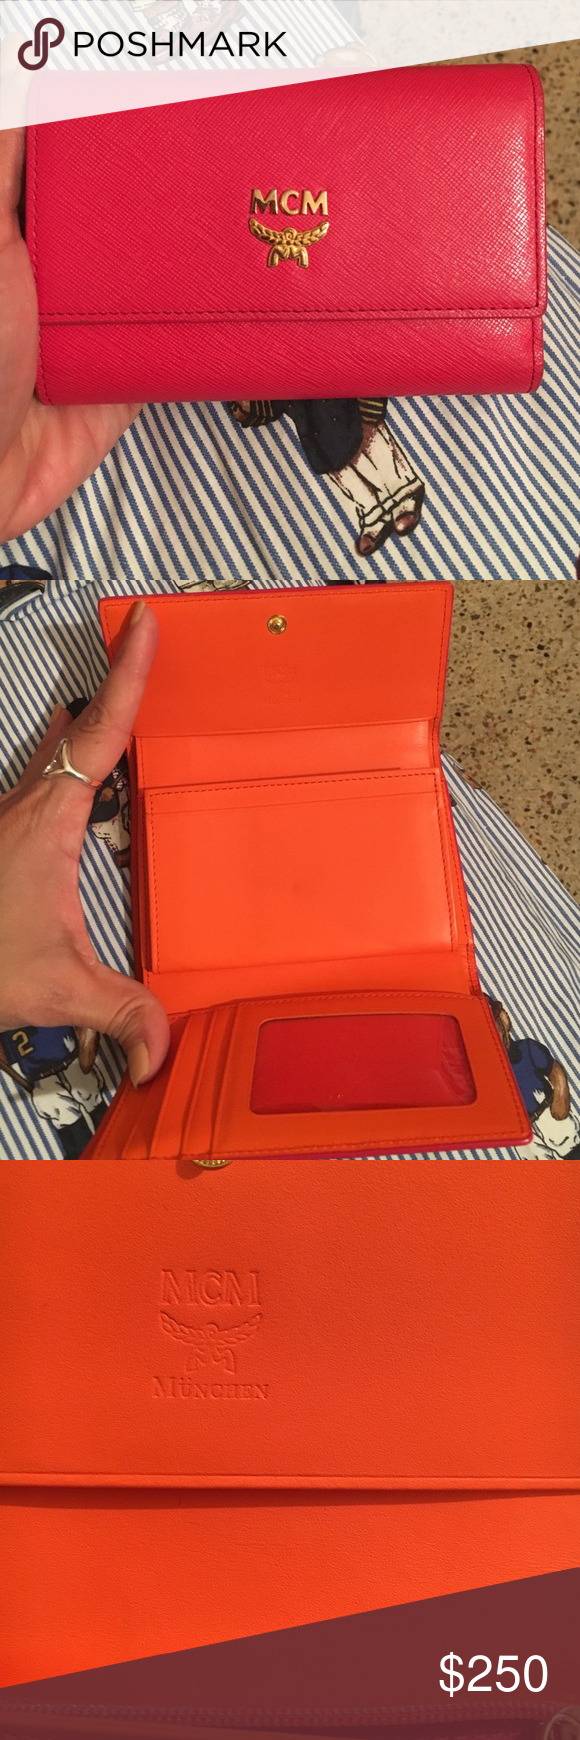 f3f4110e33b MCM wallet Great condition and authentic Beautiful the wallet is pink  outside an orange inside tv 350 mcm Other